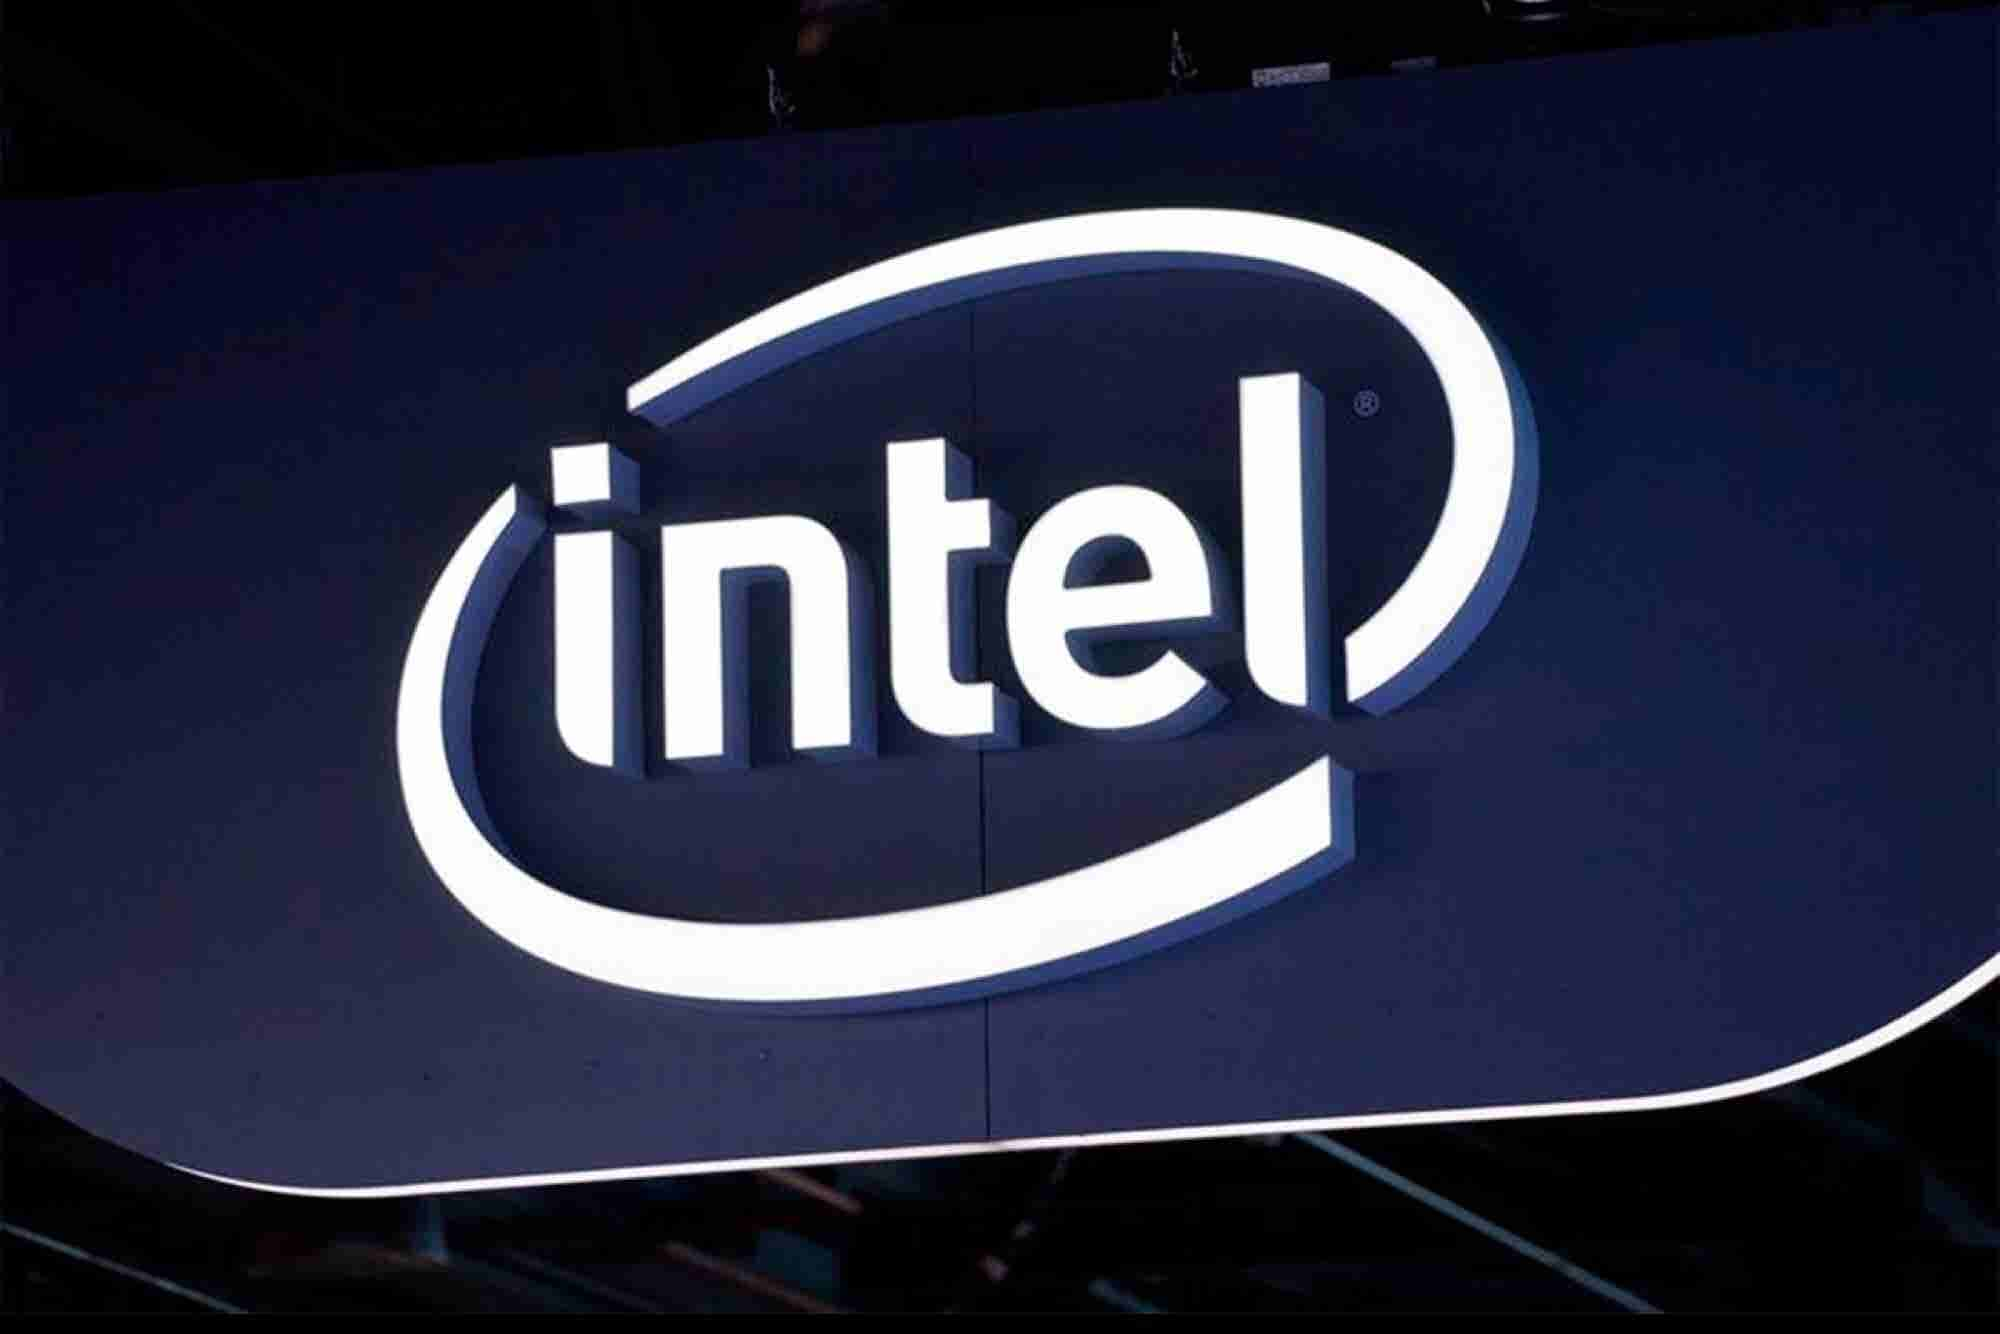 Intel to Buy Smaller Chipmaker for $16.7 Billion